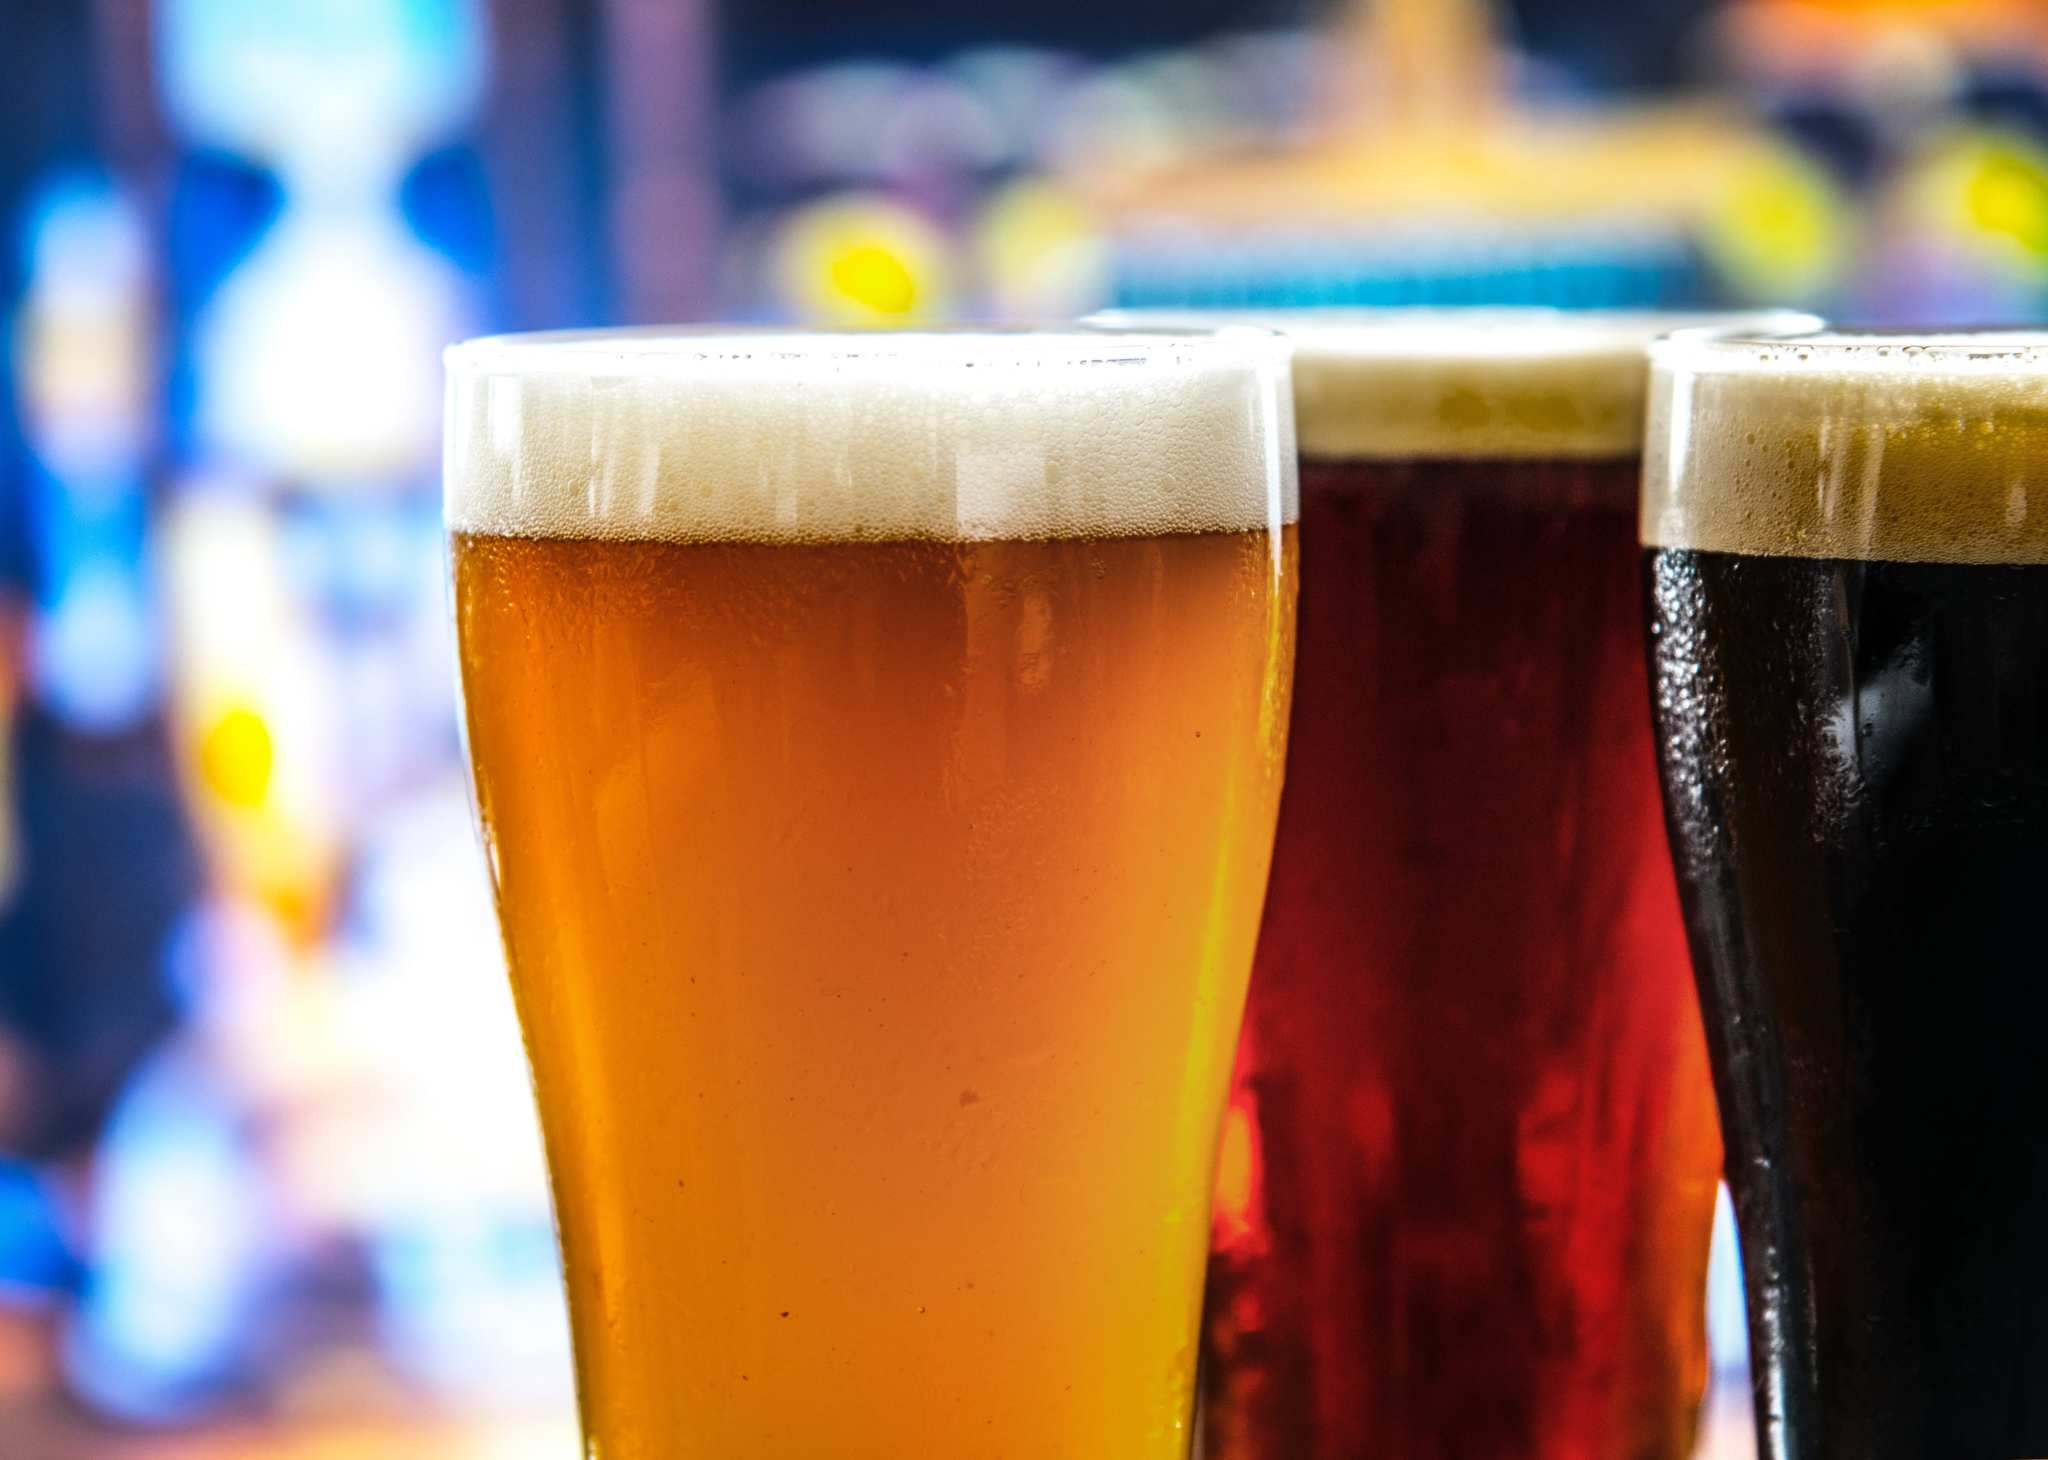 A photo showing three different beers of different colors in pint glasses. The success of New Belgium is bringing a host of new hemp craft beer to market, as well as entries from some larger brewers too.